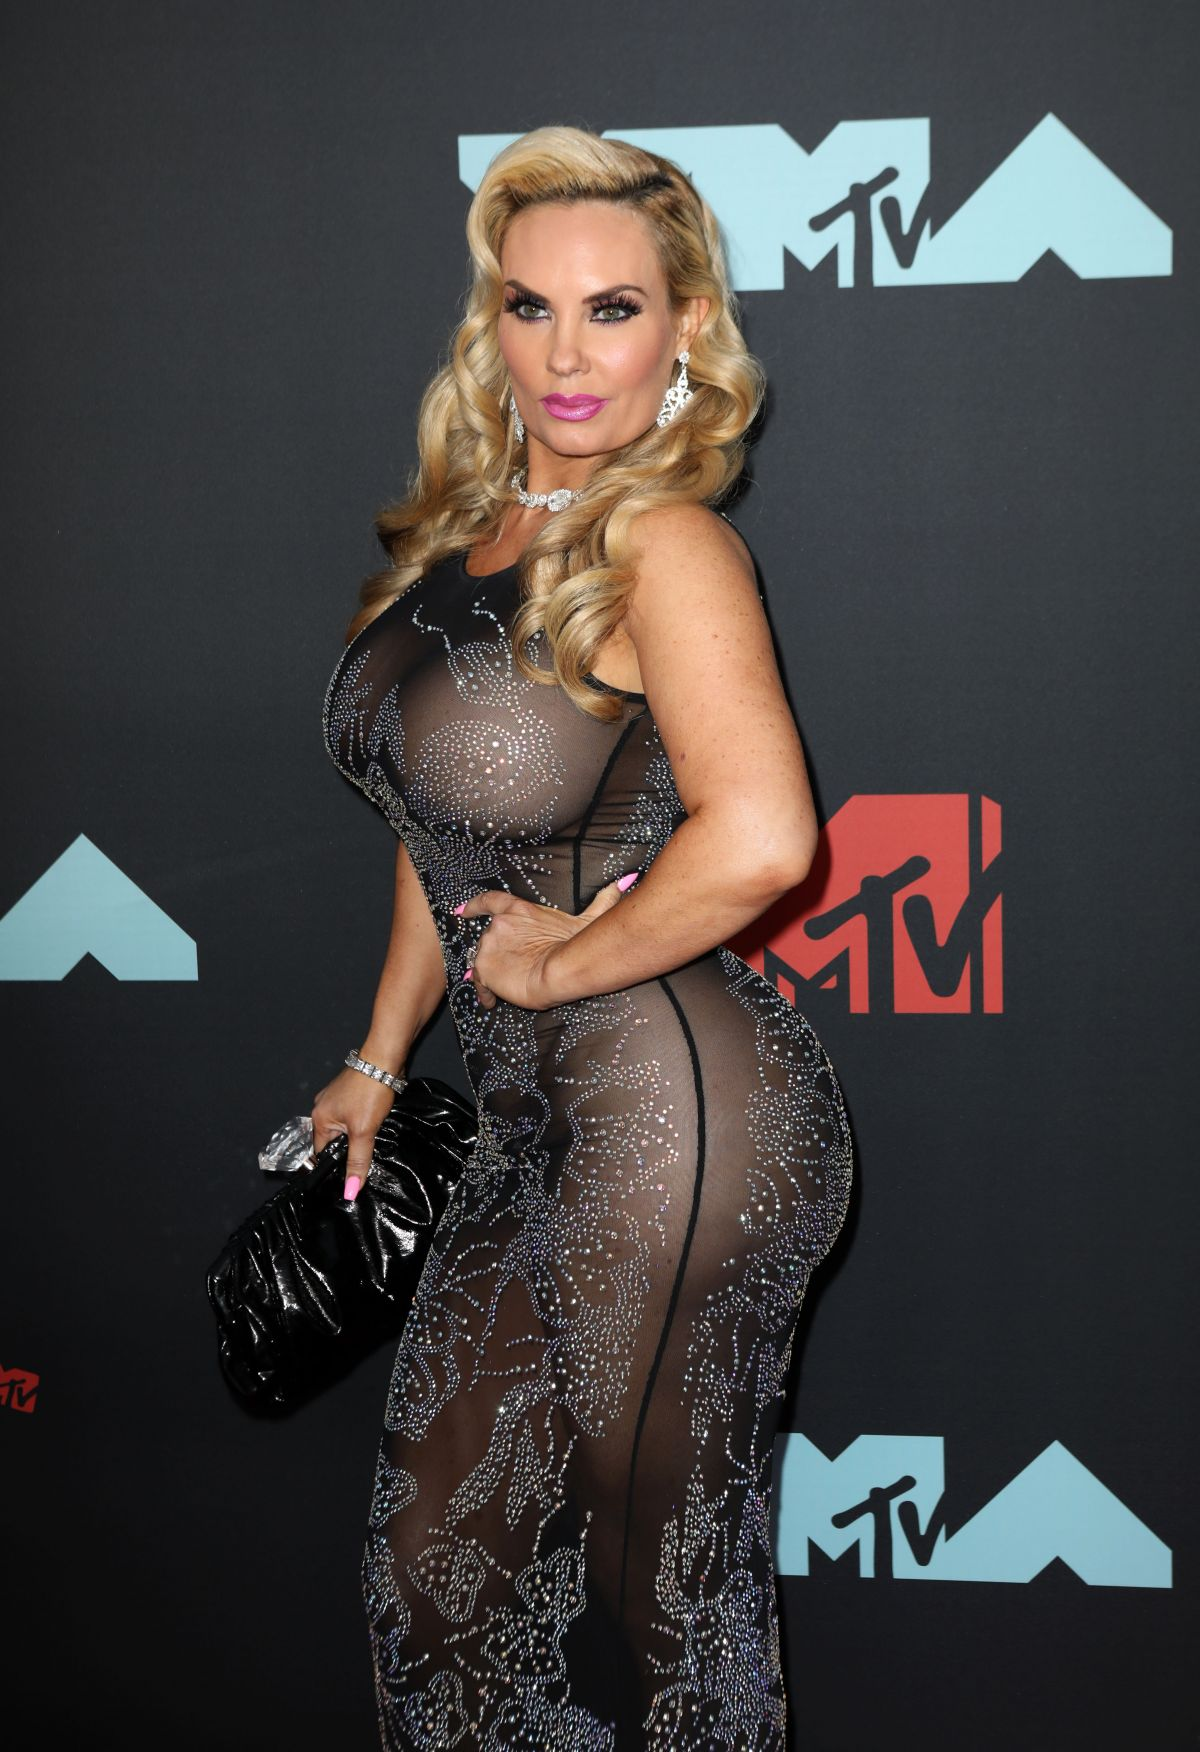 NICOLE COCO AUSTIN at 2019 MTV Video Music Awards in